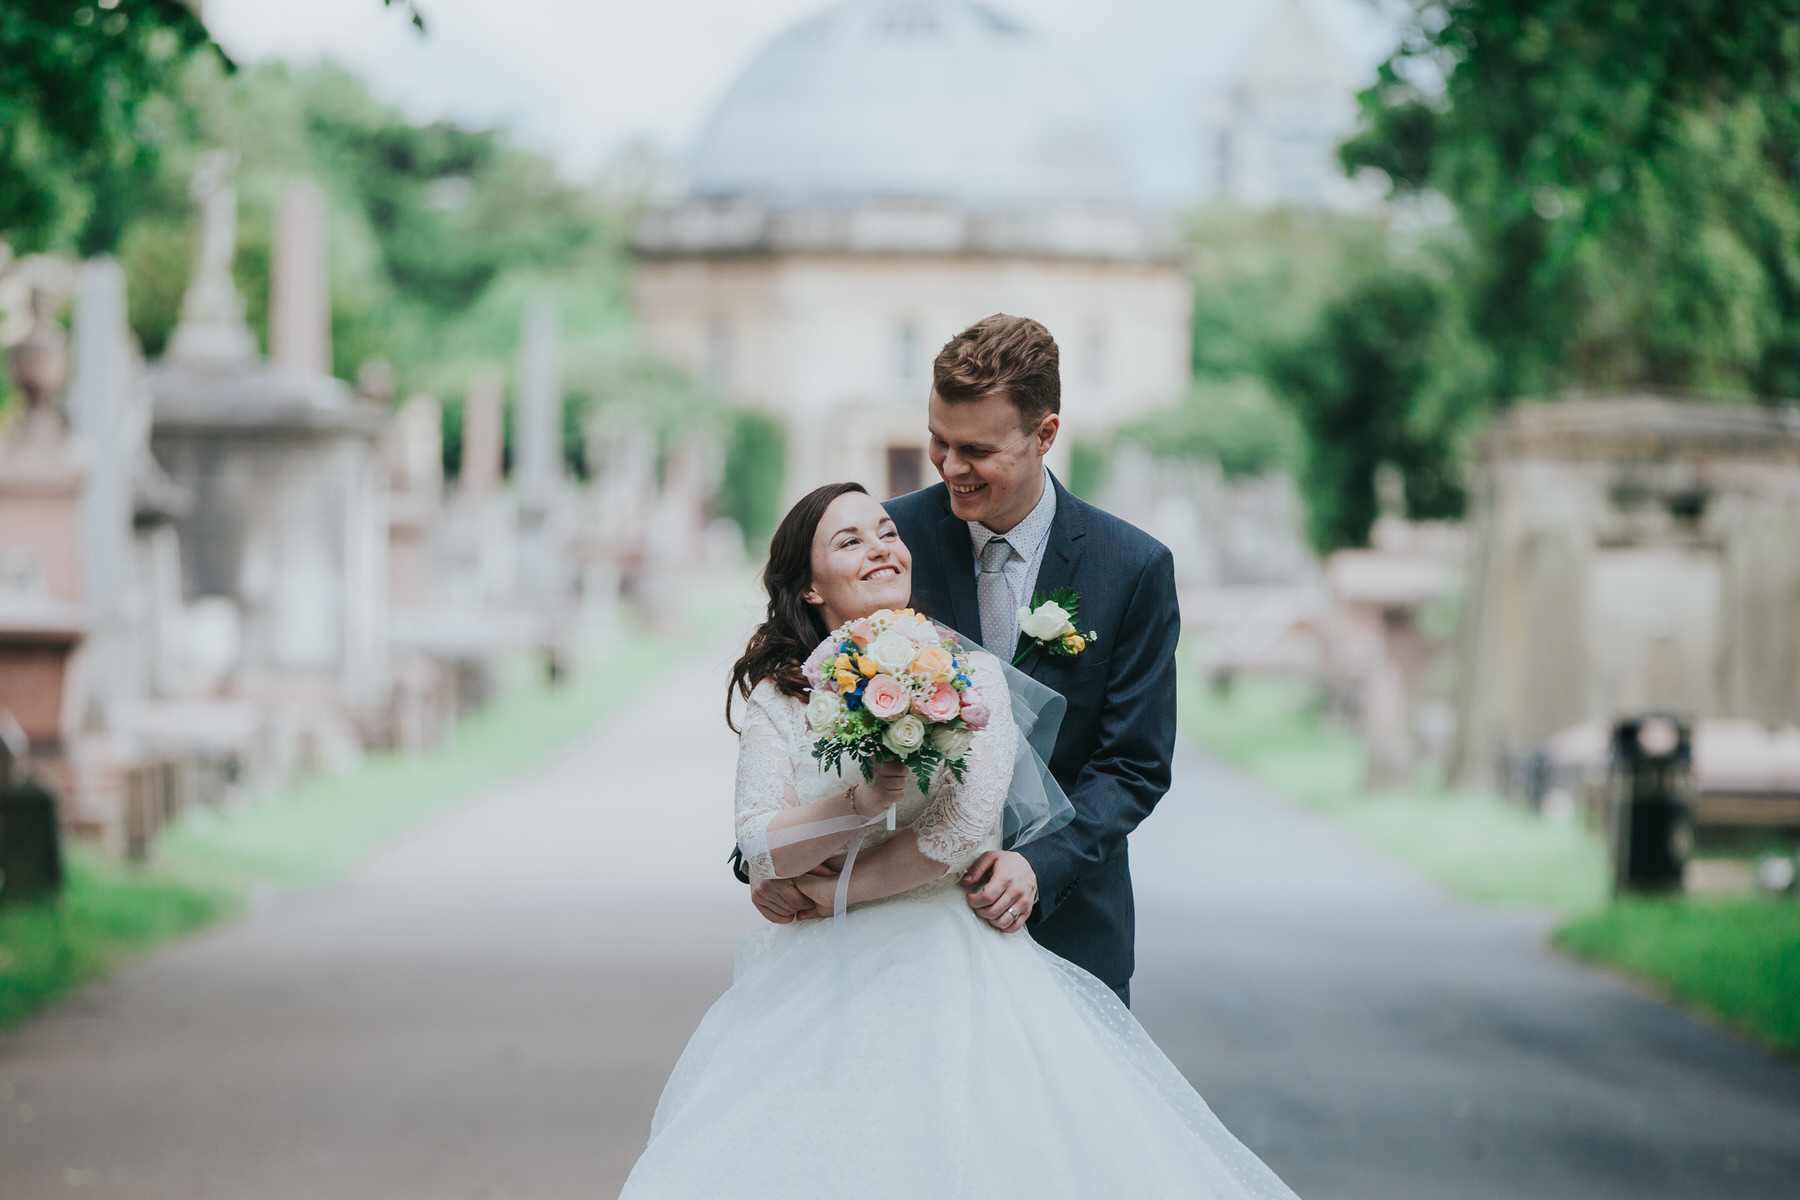 169 happy groom bride dancing Brompton Cemetery wedding.jpg